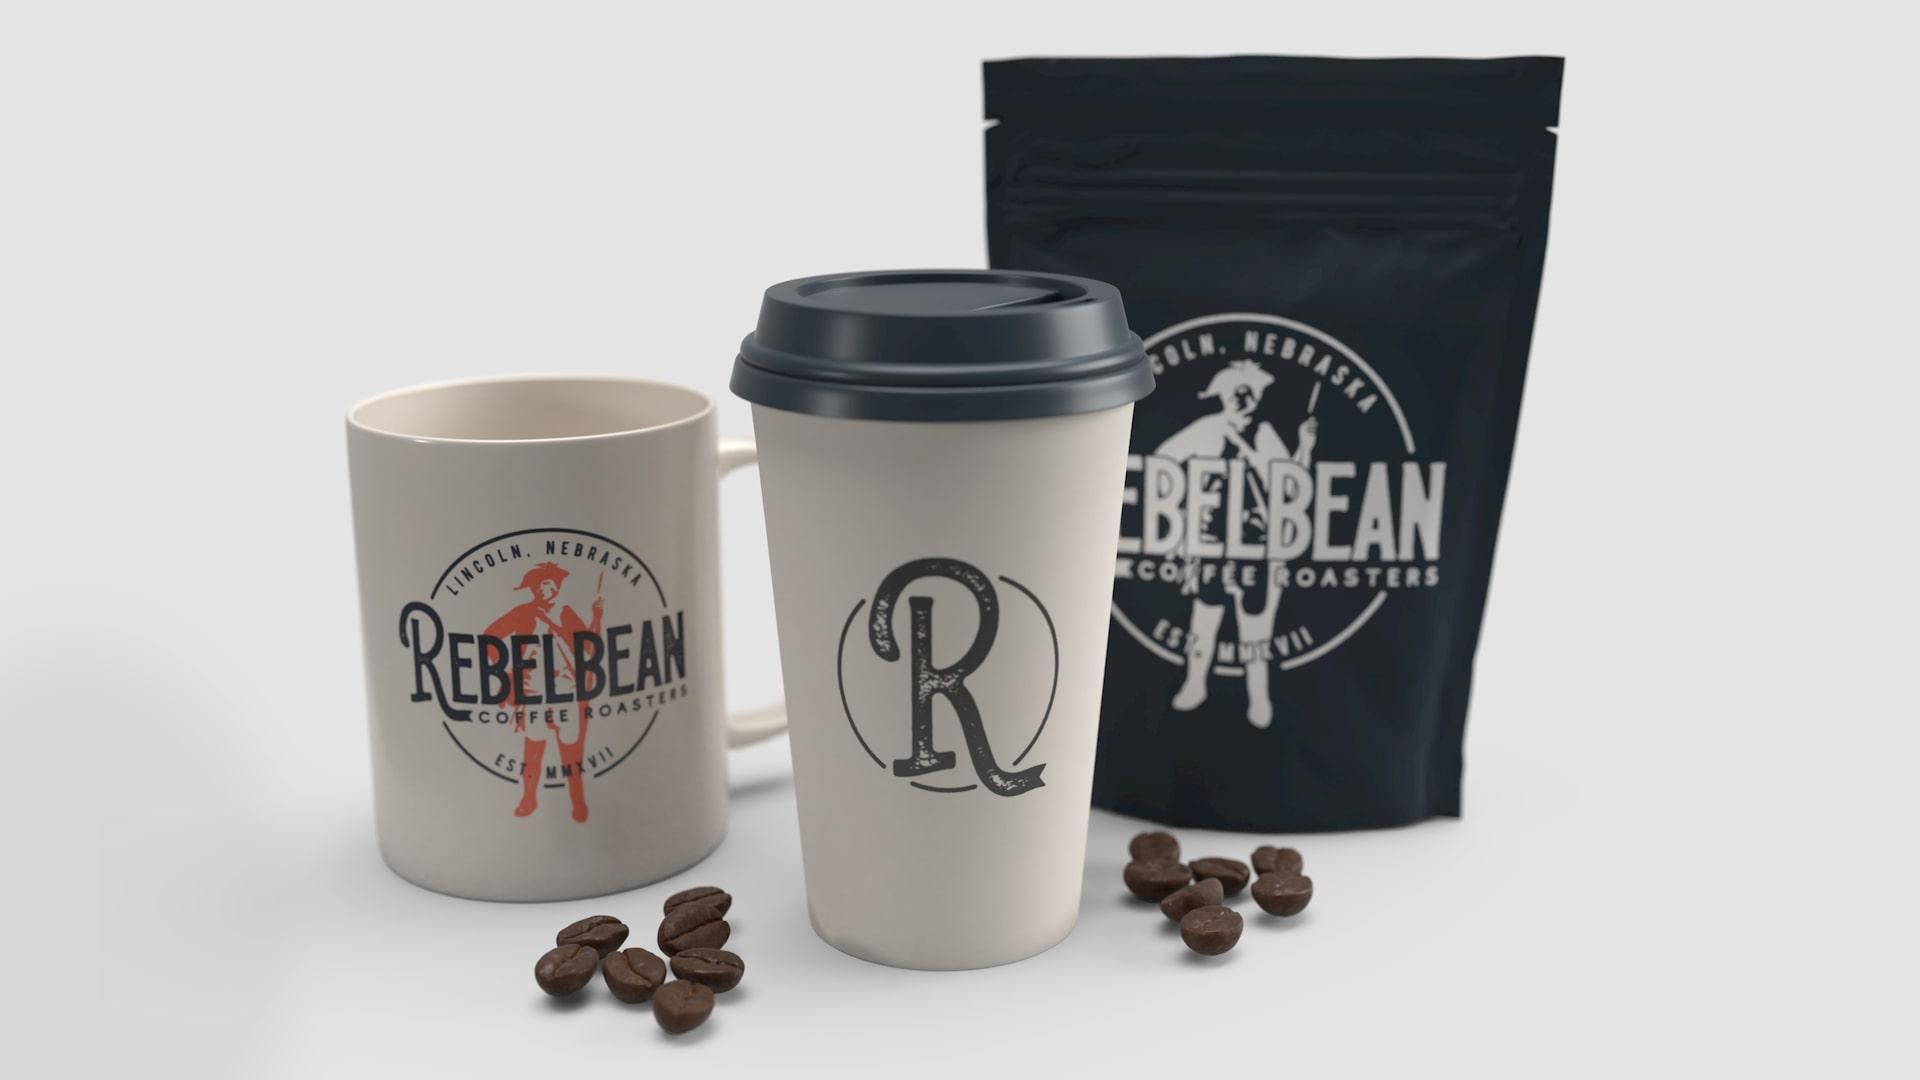 Rt014 Rebelbean Logo 04 2019 10 15 Rd01